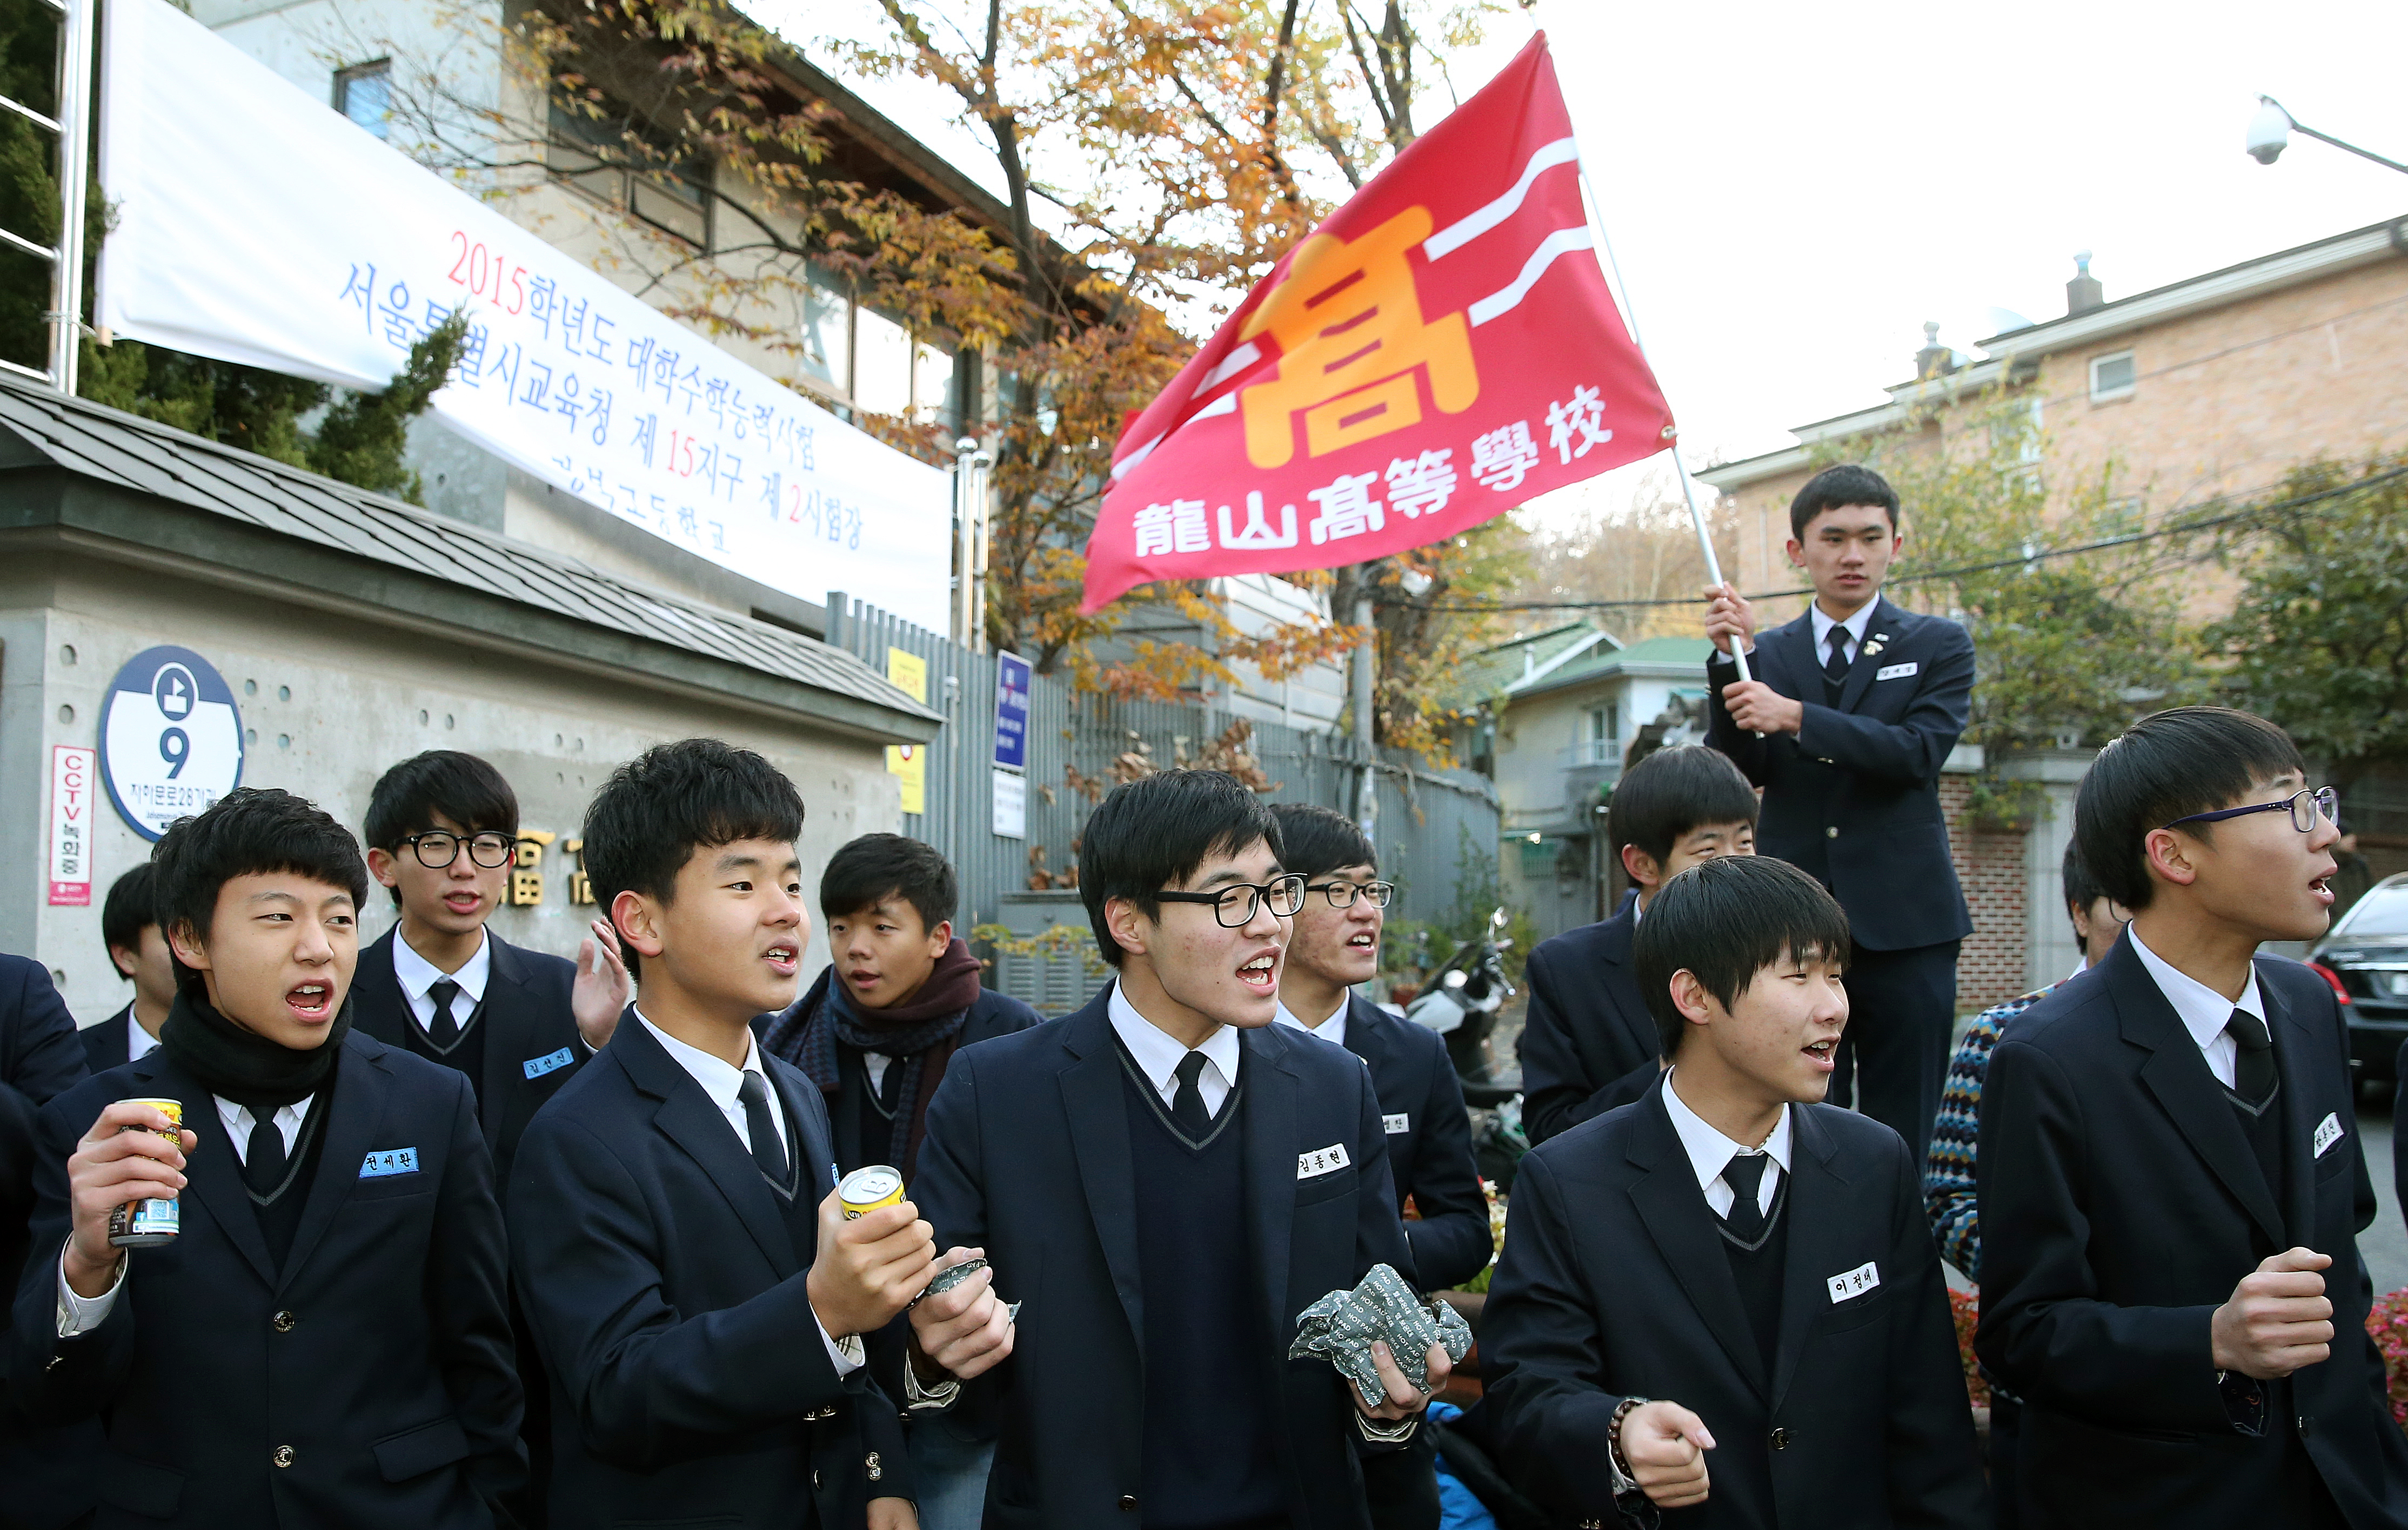 Students are encouraging their seniors and wish them best luck for the exam (Image: Republic of Korea/ Flicker)